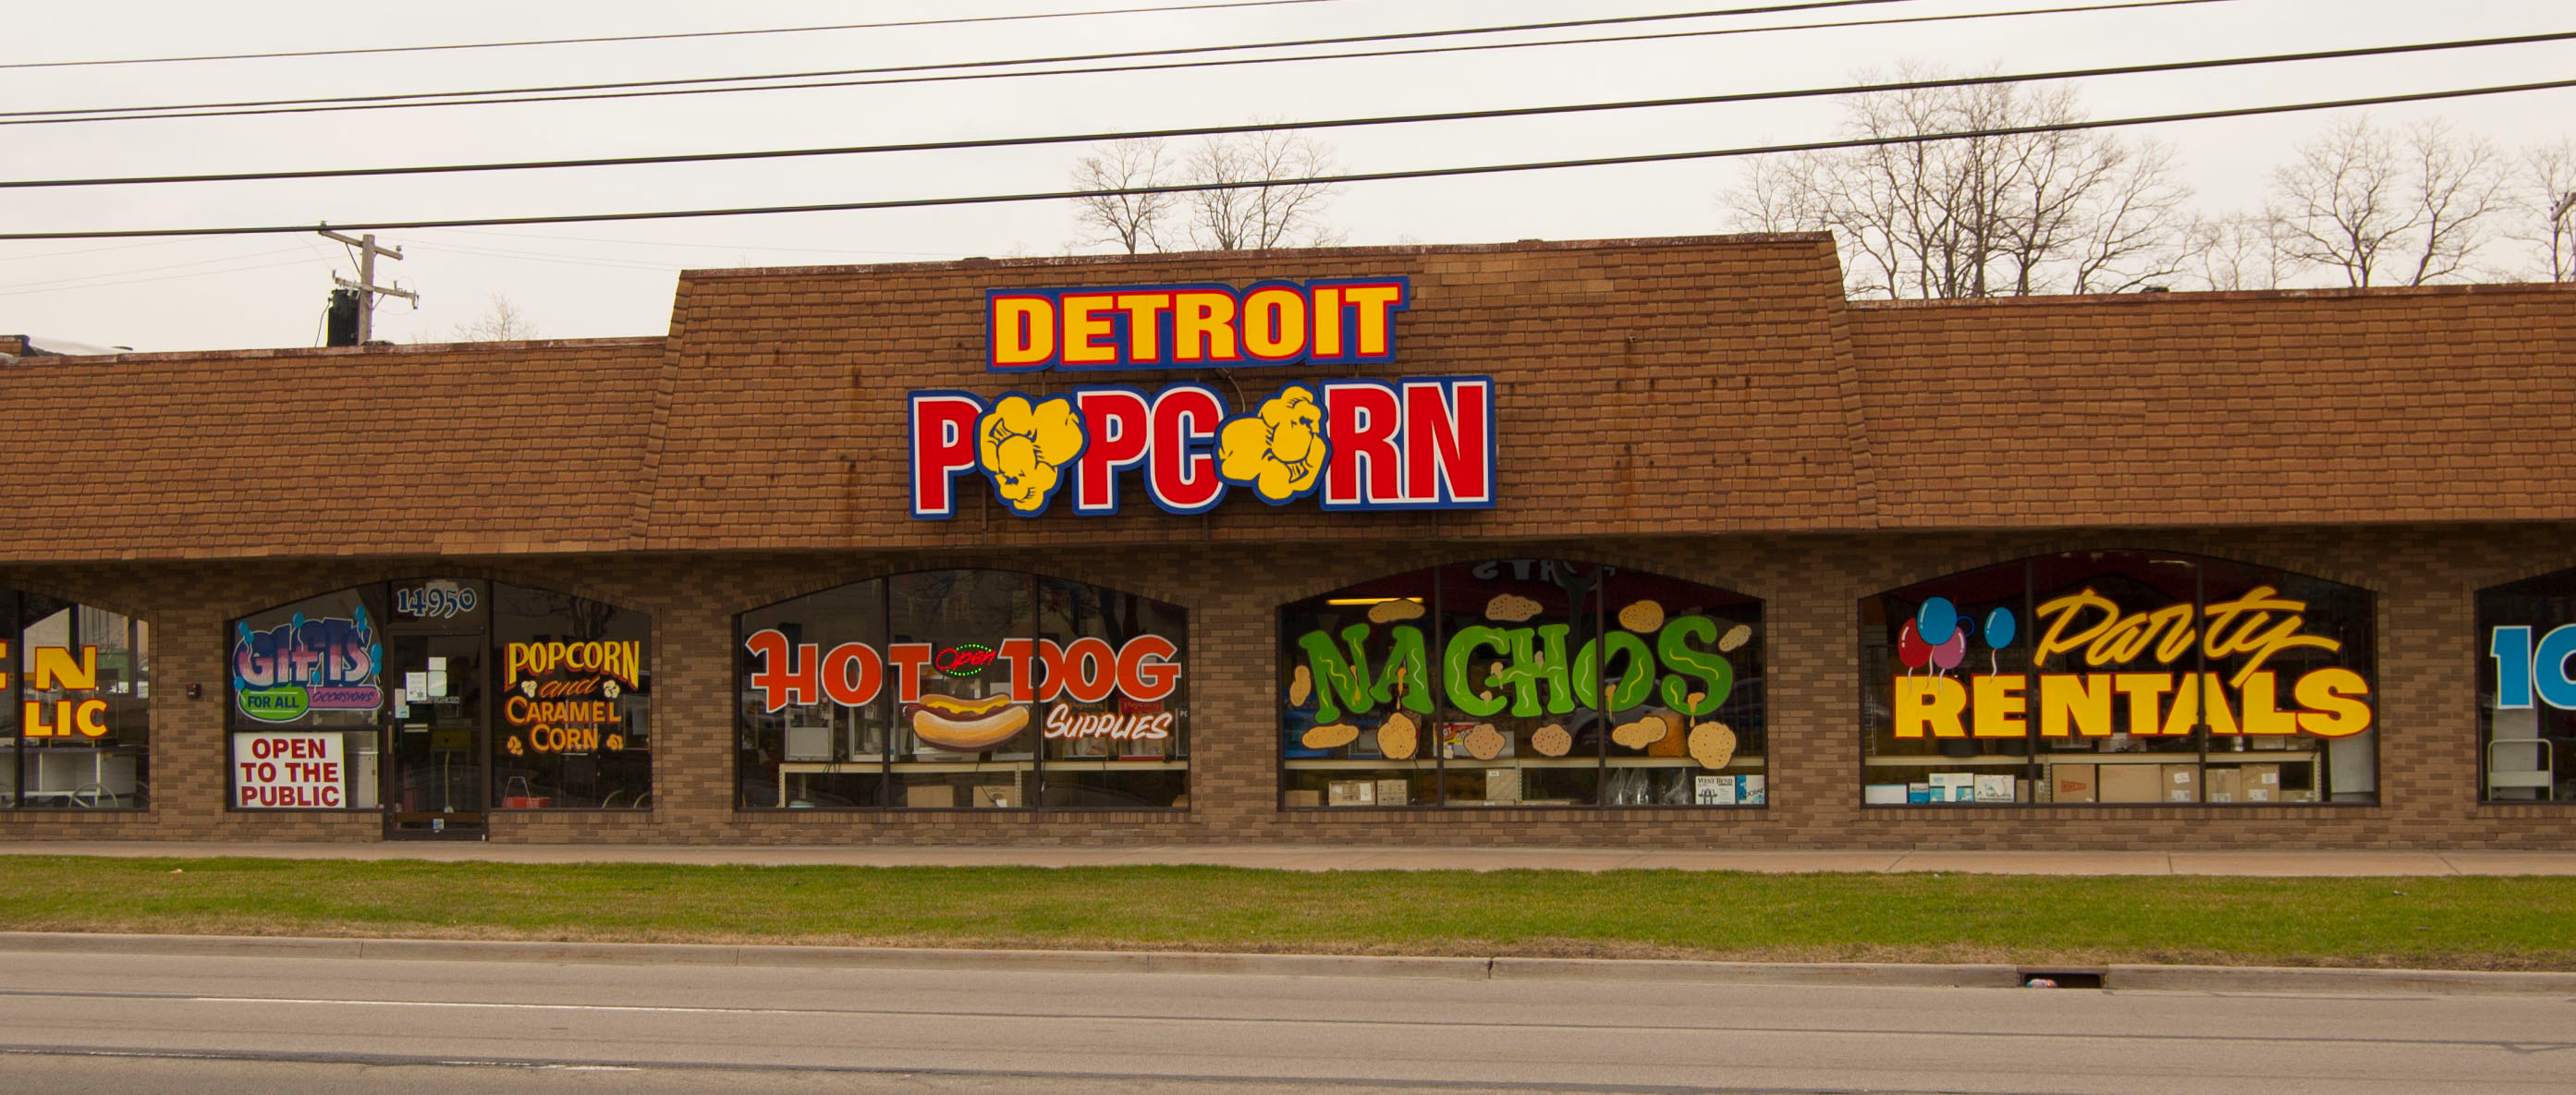 Detroit Popcorn Company, Telegraph Rd., Redford Twp., has been preparing delicious snack foods for the last 92 years. All products are made fresh daily, including buttery popcorn, cheddar cheese popcorn and caramel corn (soaked in percent real caramel).